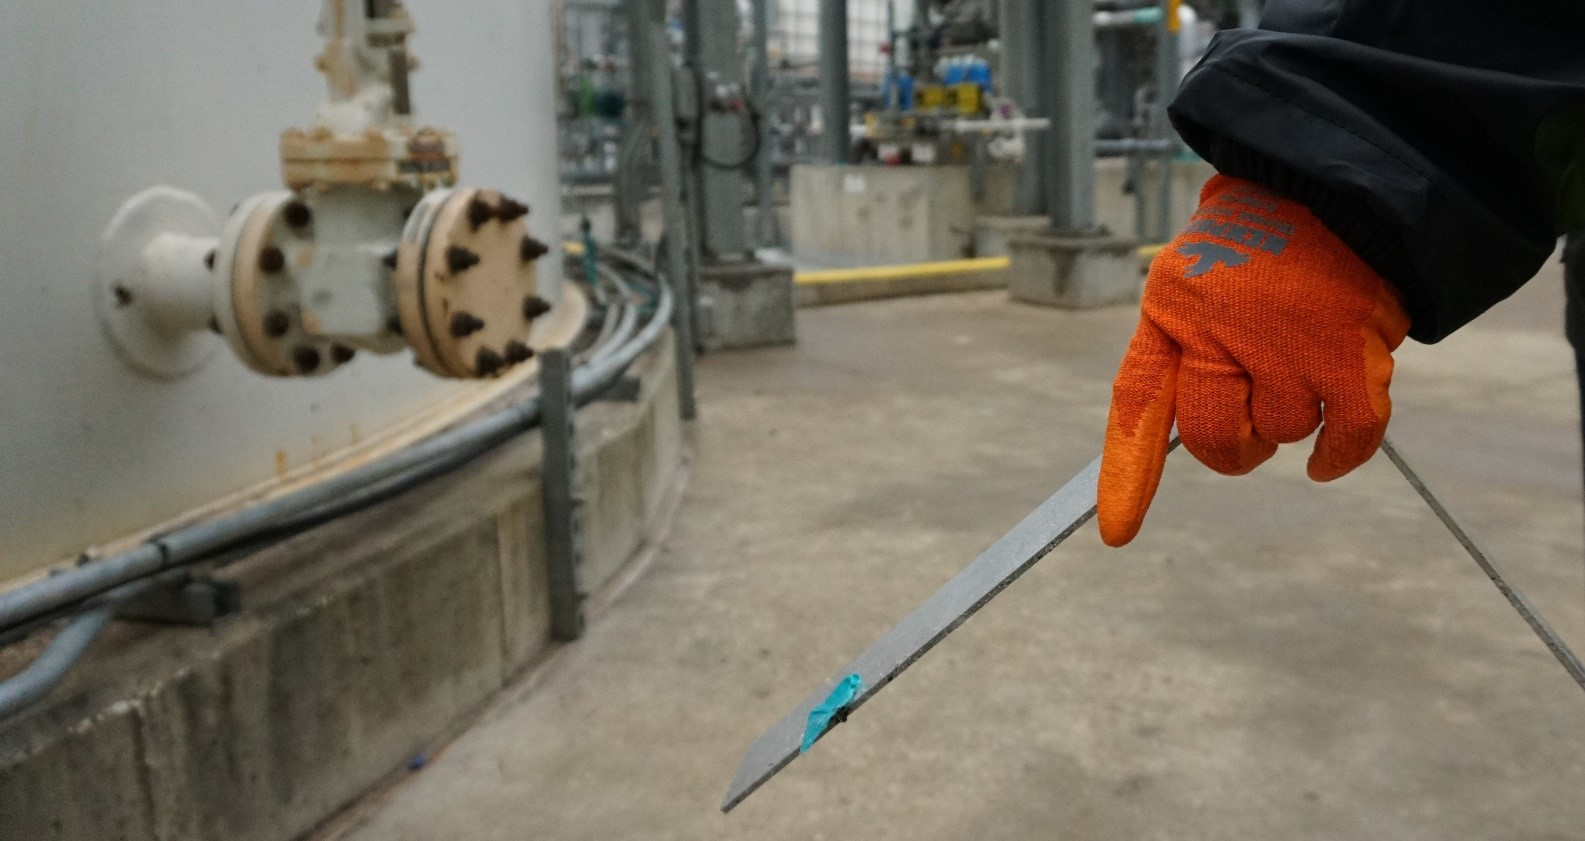 PPE / Safety Gear Needed for Oil and Gas Refinery